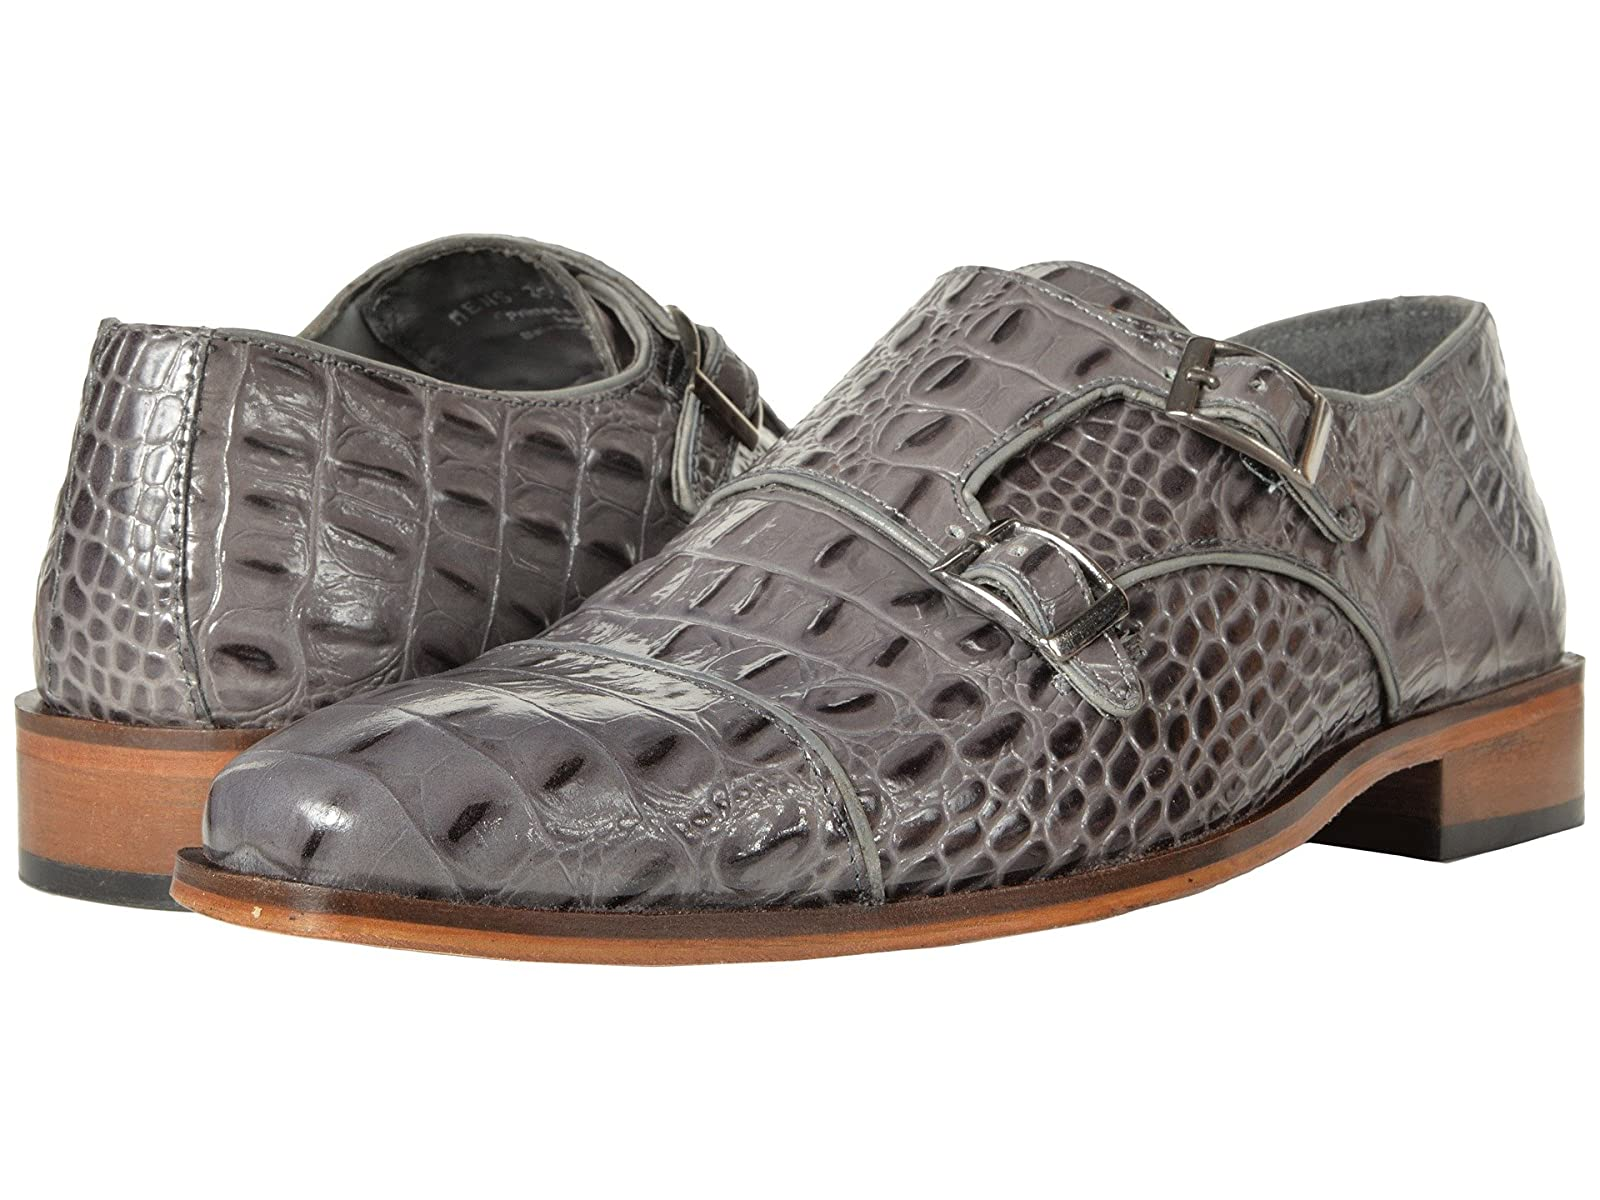 Stacy Adams GolatoAtmospheric grades have affordable shoes